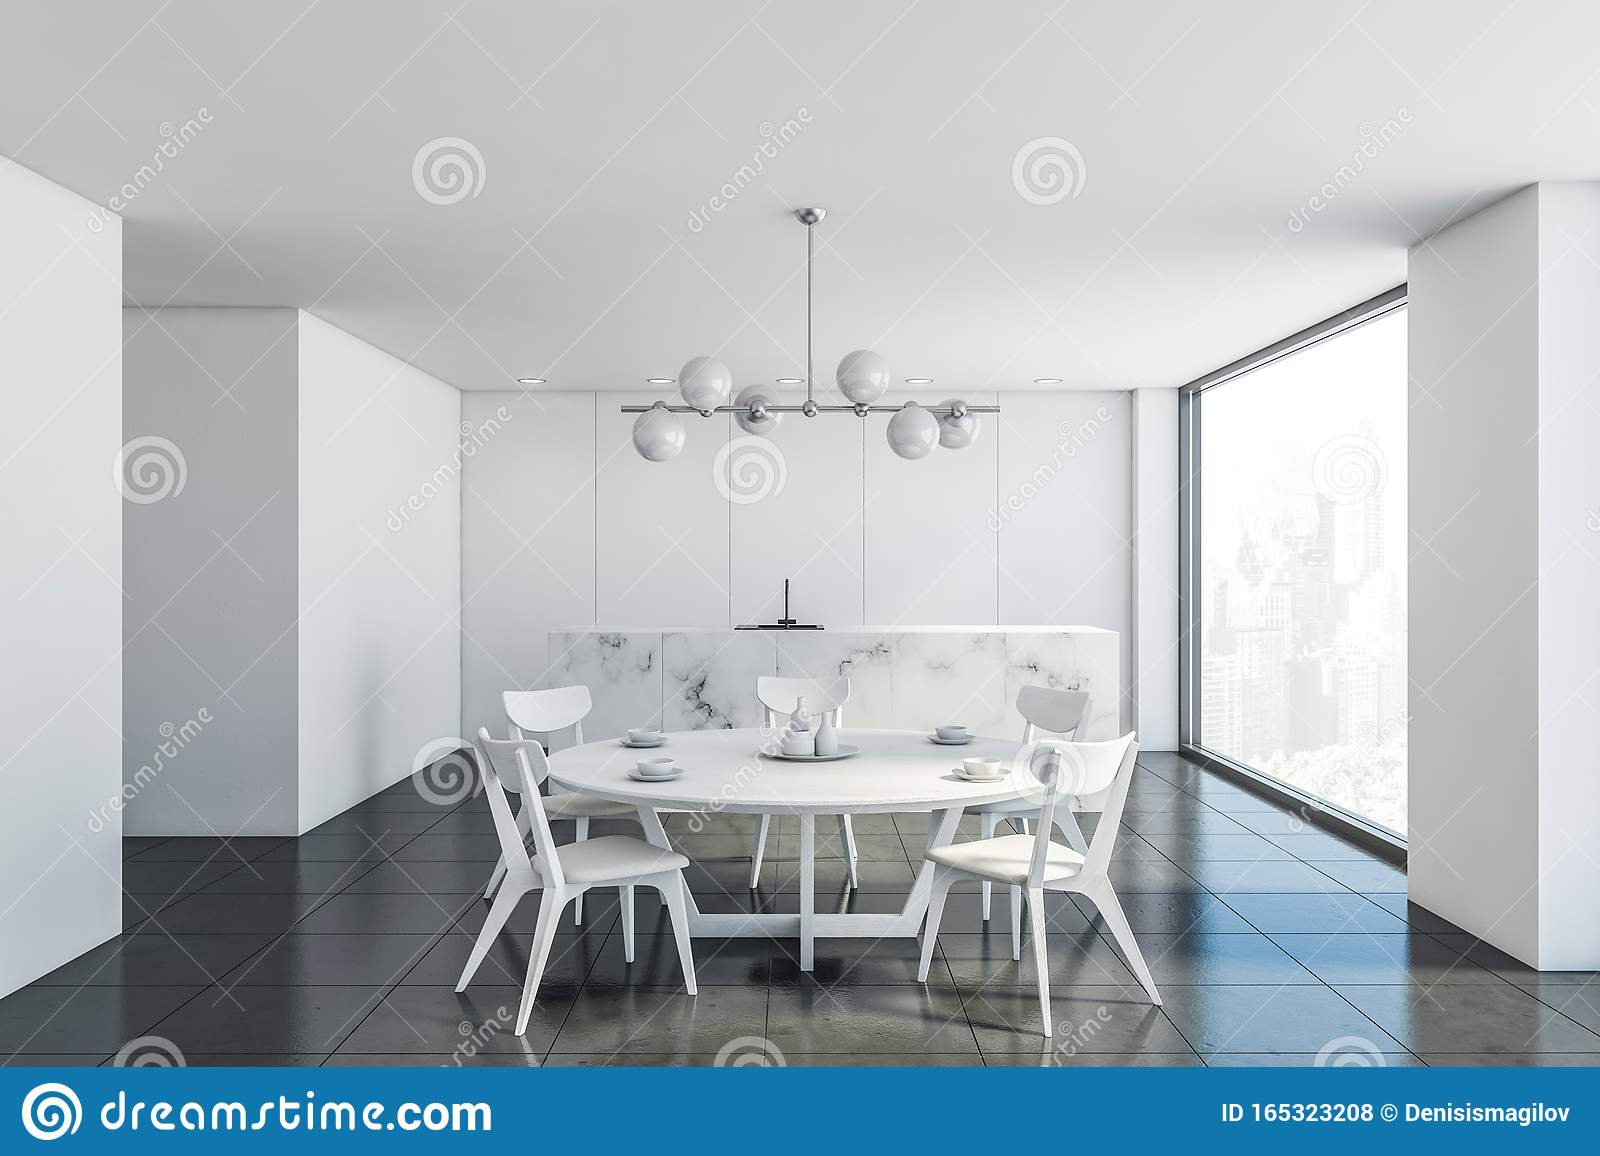 White Marble Kitchen And Dining Room Interior Stock Illustration Illustration Of Decorate Design 165323208